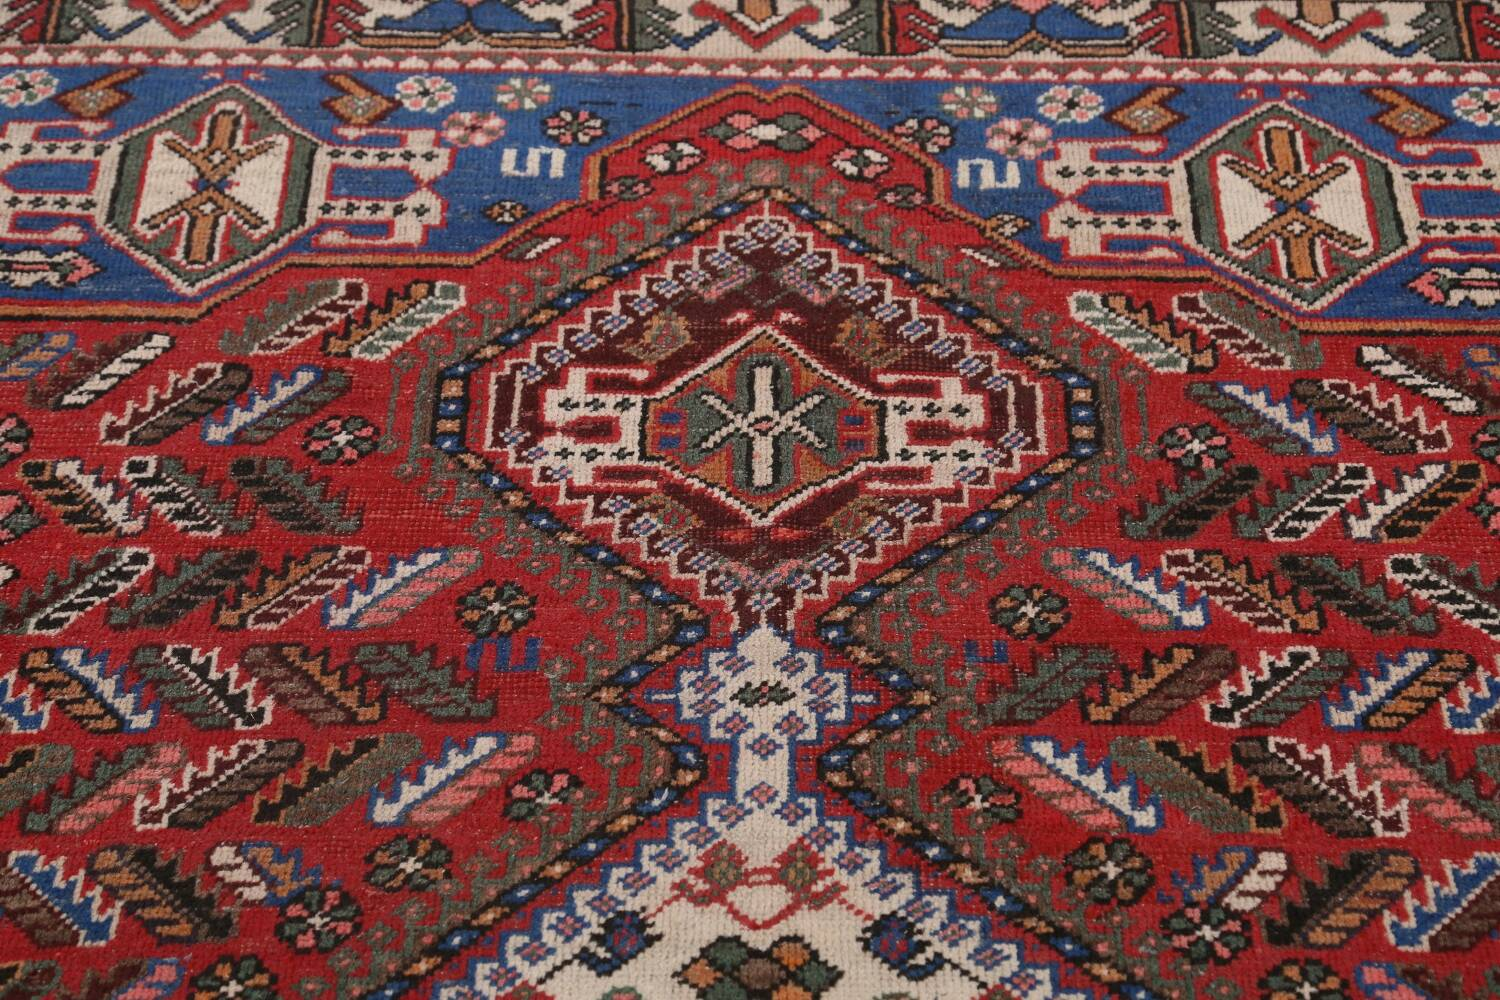 Antique Tribal Bakhtiari Persian Area Rug 5x6 image 12